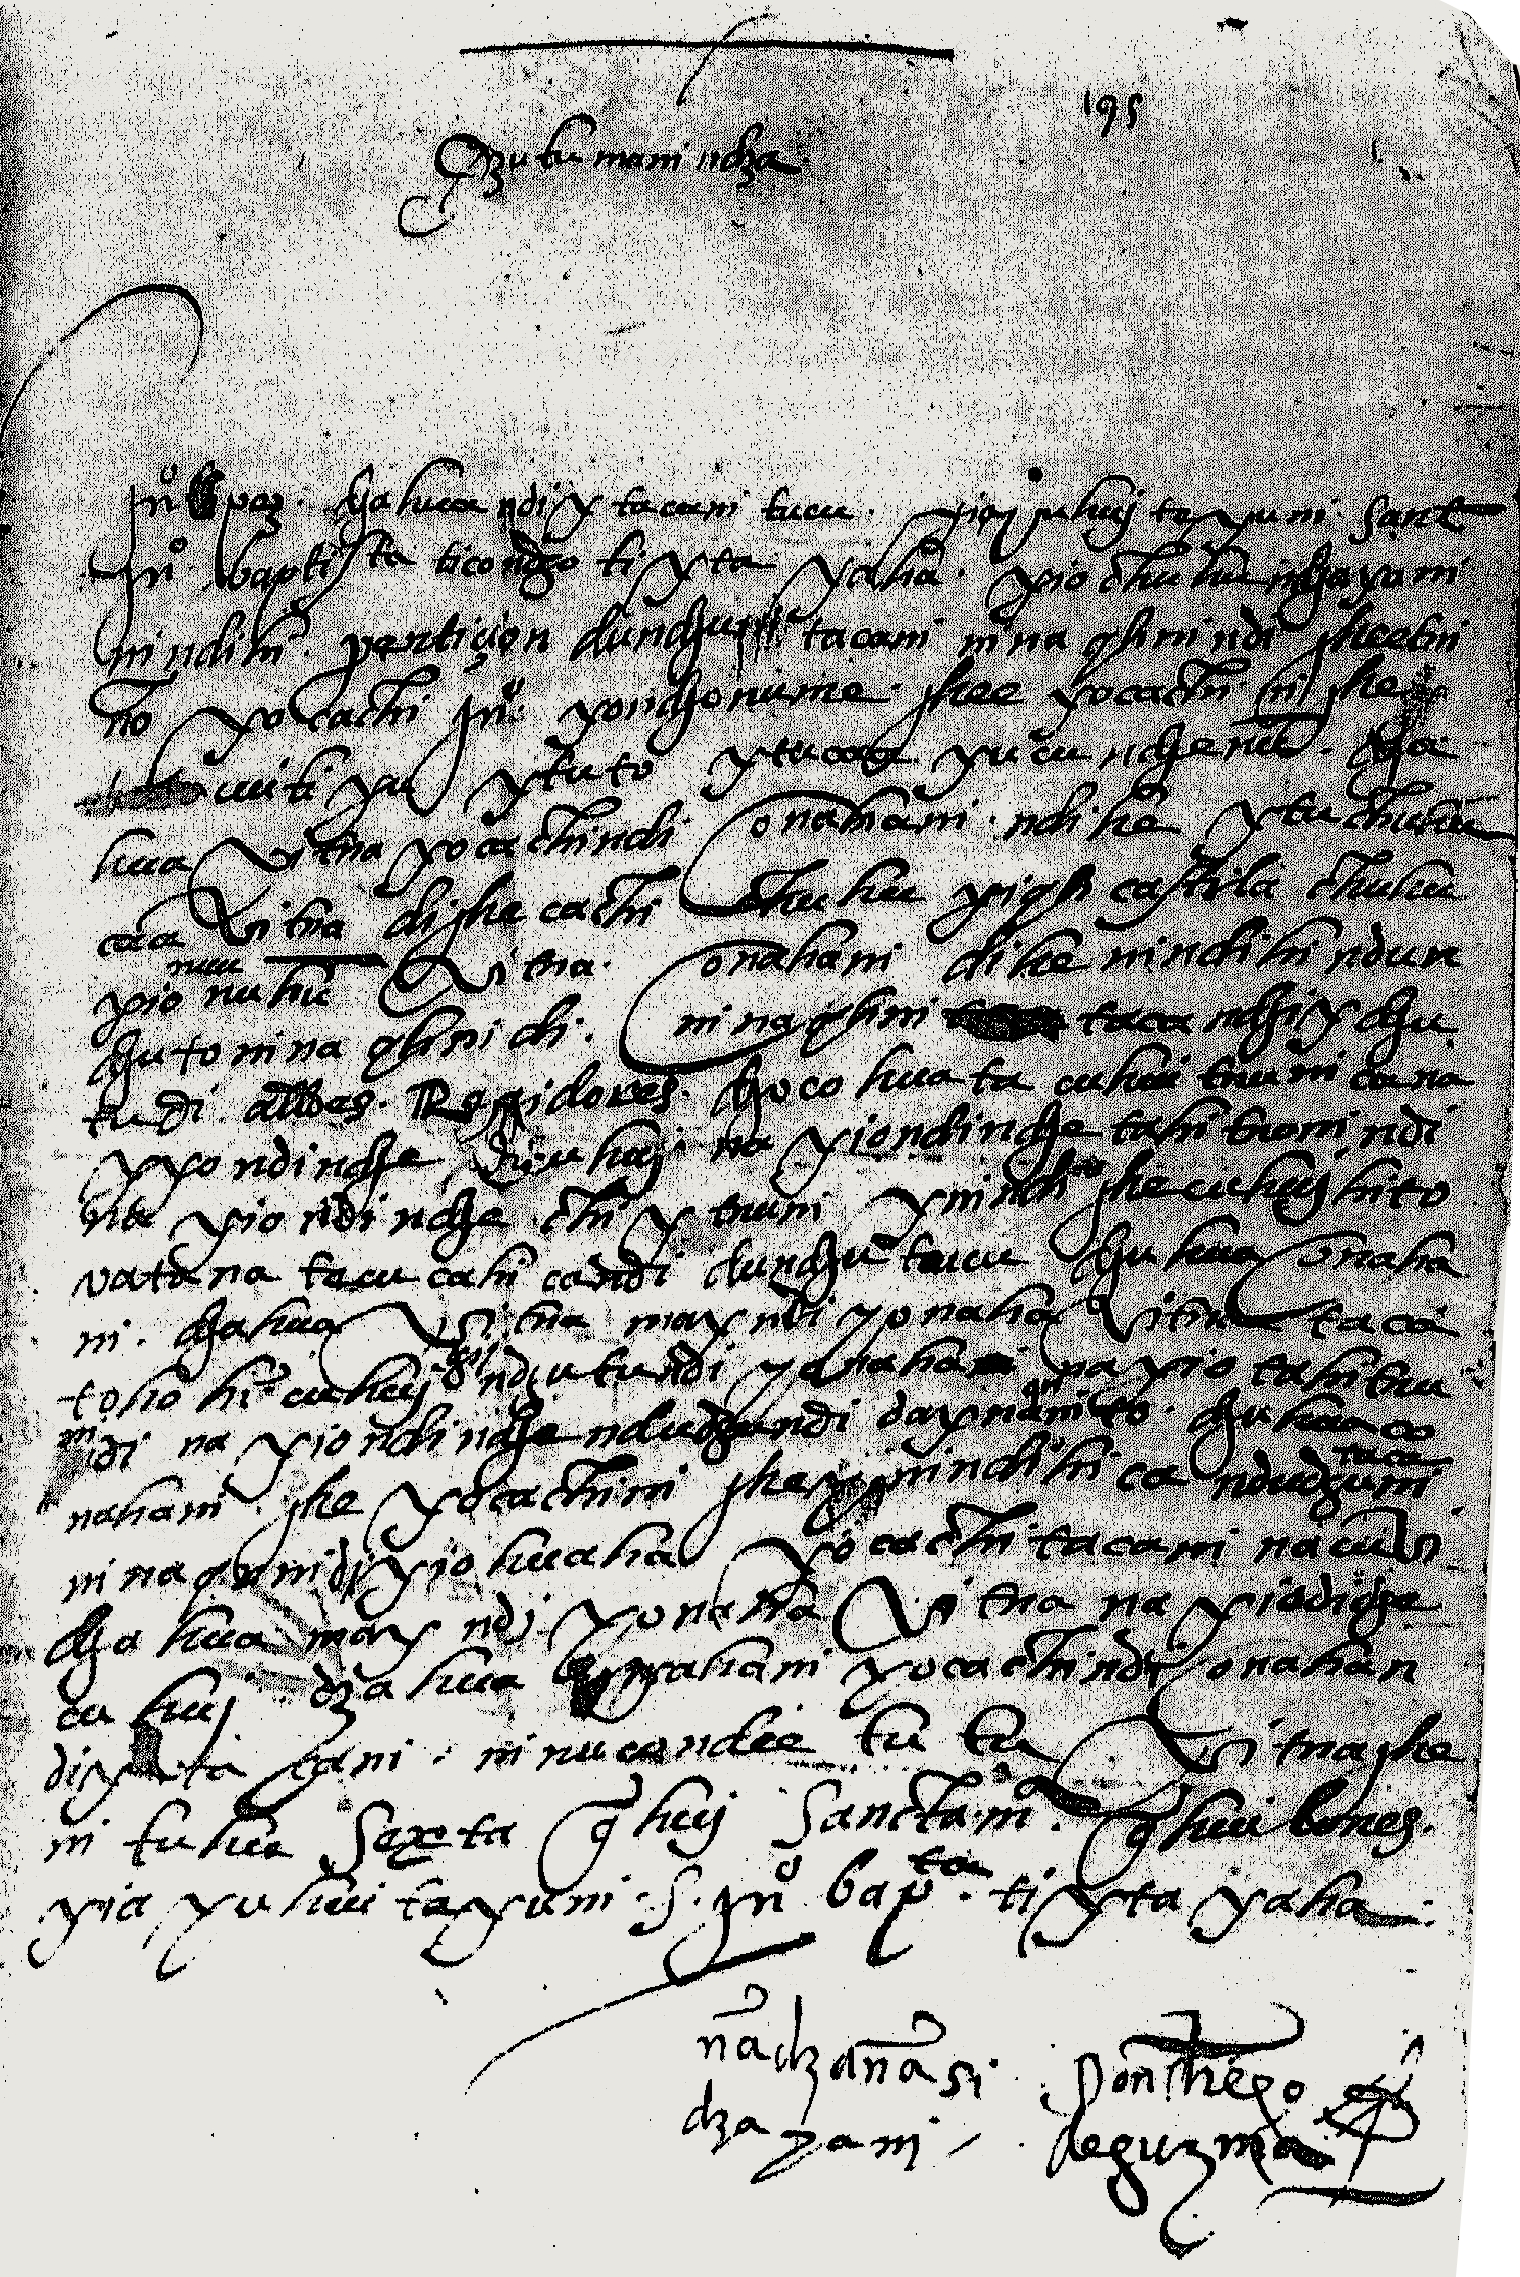 FIGURE 14. Letter from don Diego de Guzm�n, 1572.